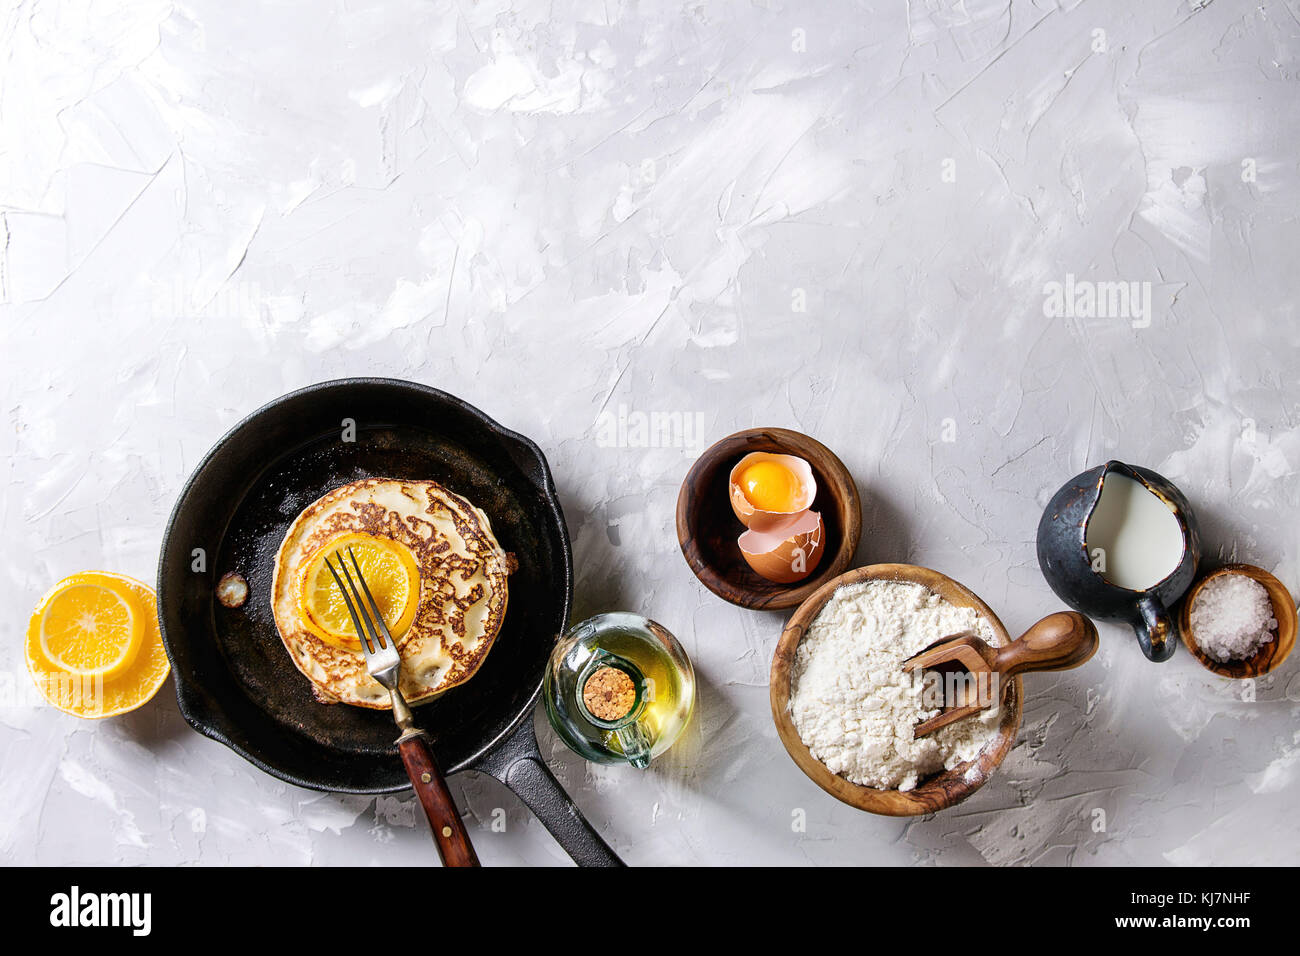 Homemade pancakes with fried orange in cast-iron pan and ingredients above. Wooden bowls of flour, yolk, salt, milk, Stock Photo